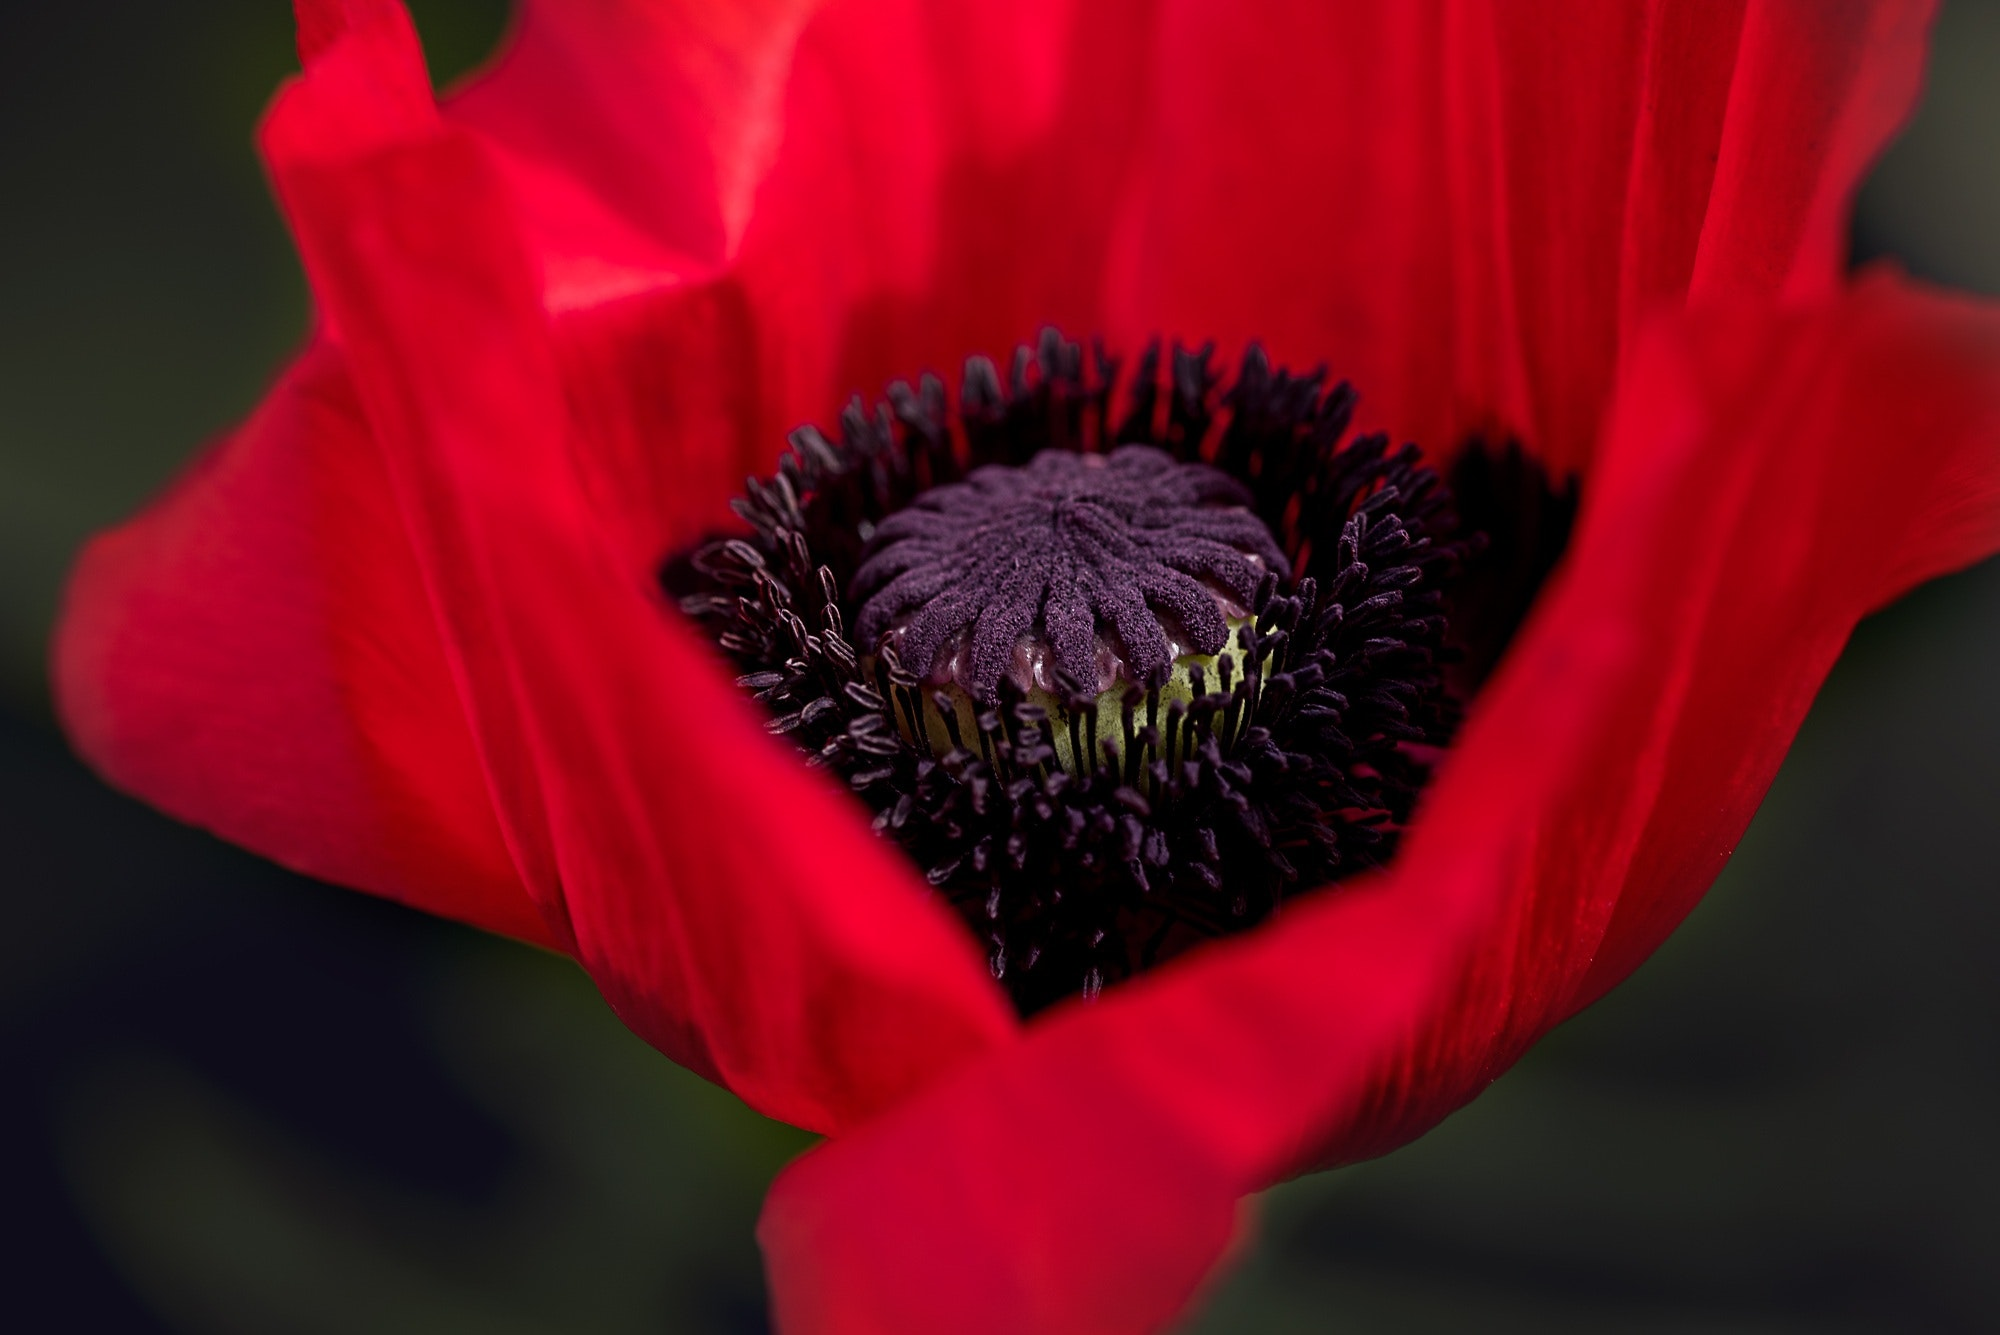 1000 Engaging Poppy Flower Photos Pexels Free Stock Photos